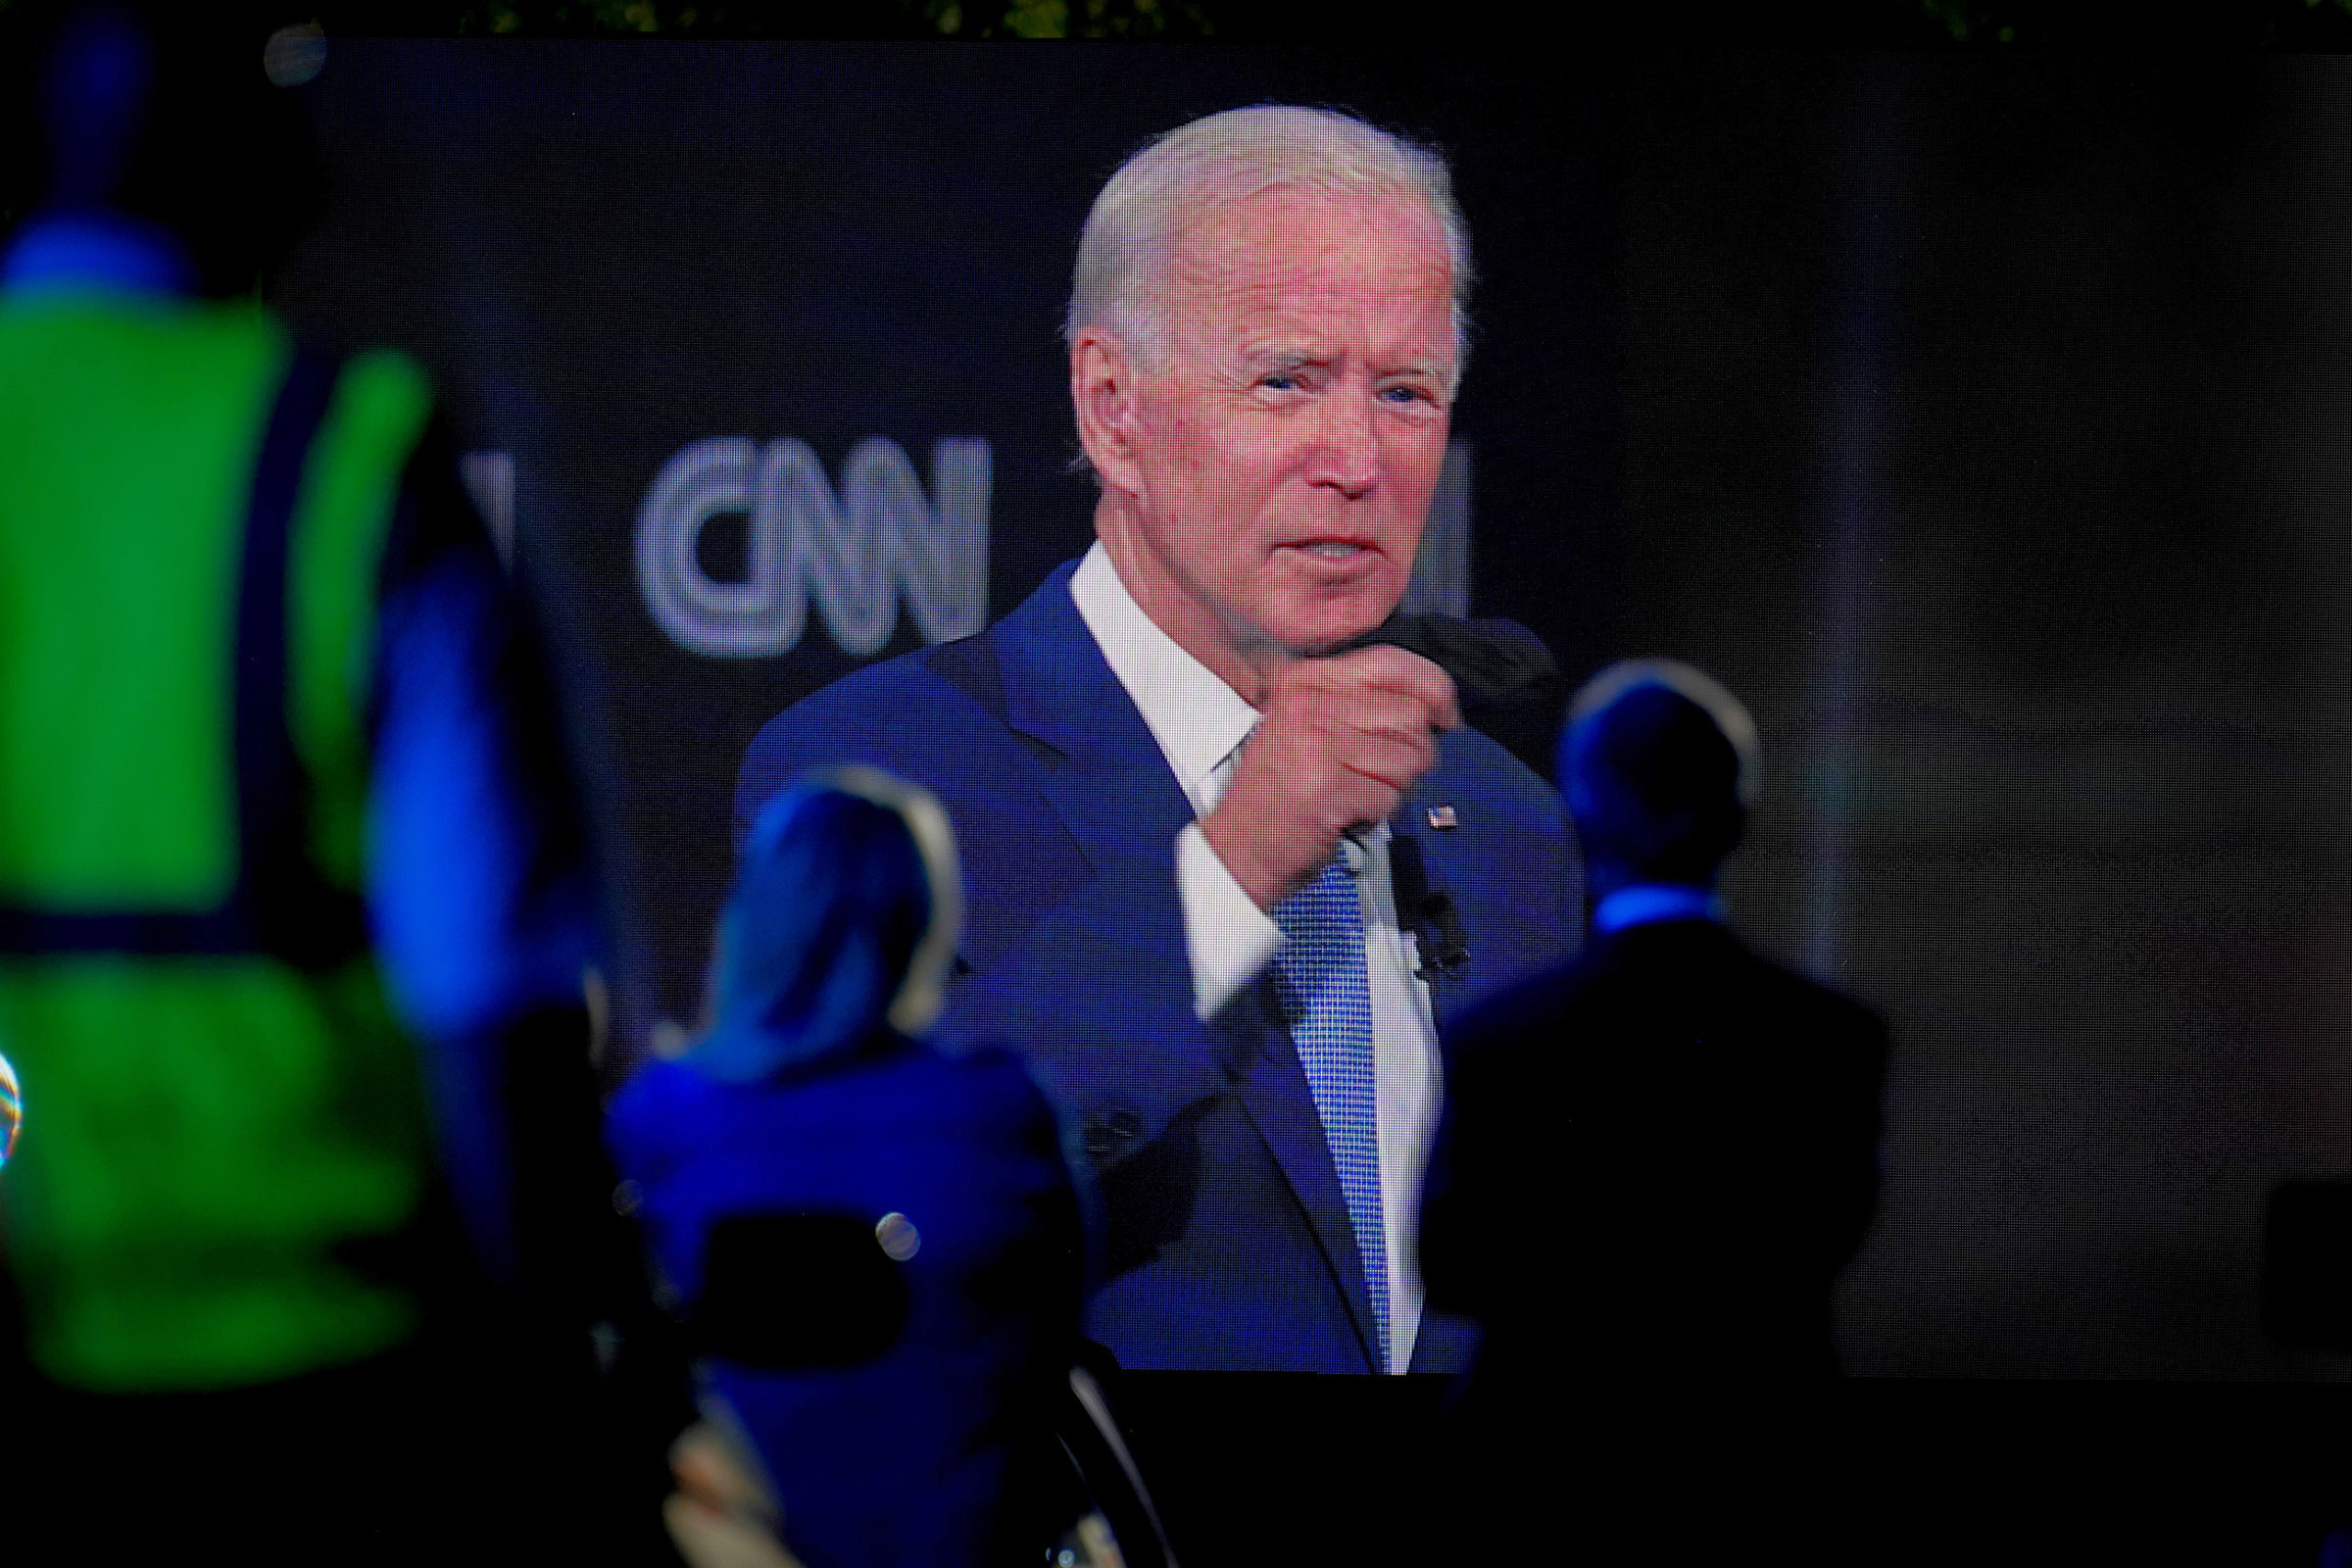 Democratic presidential nominee Joe Biden appears via video at a CNN town hall-style campaign event in Scranton, Pa., on Sept. 17, 2020.